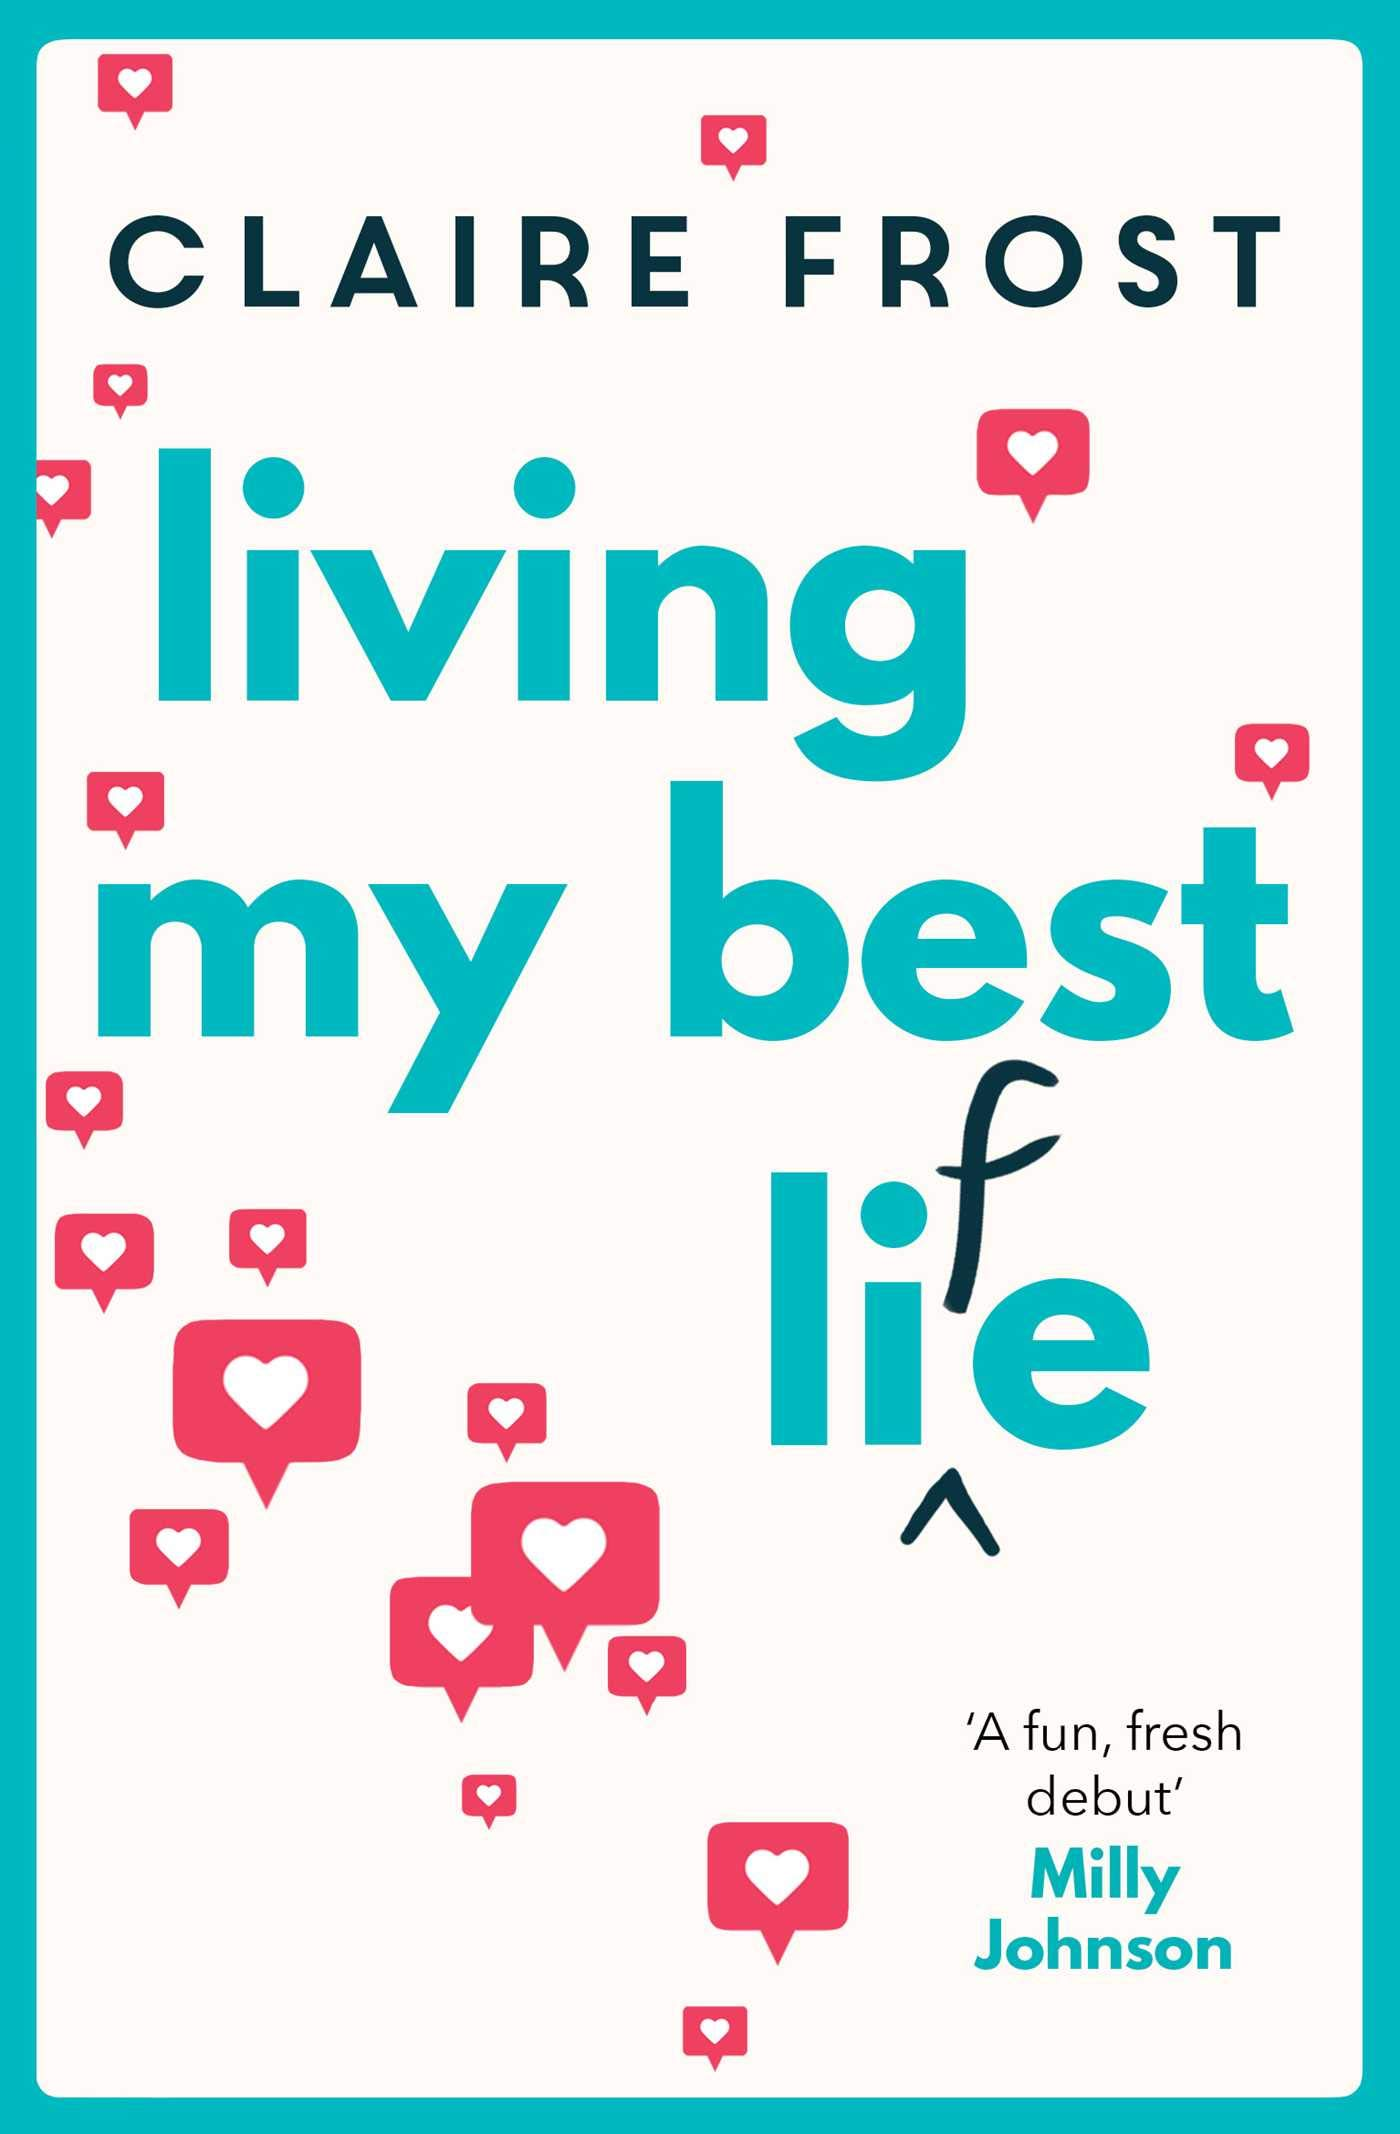 Living my best li(f)e by Claire Frost #BlogTour #ProvidedForReview @annecater @FabFrosty #LivingMyBestLife